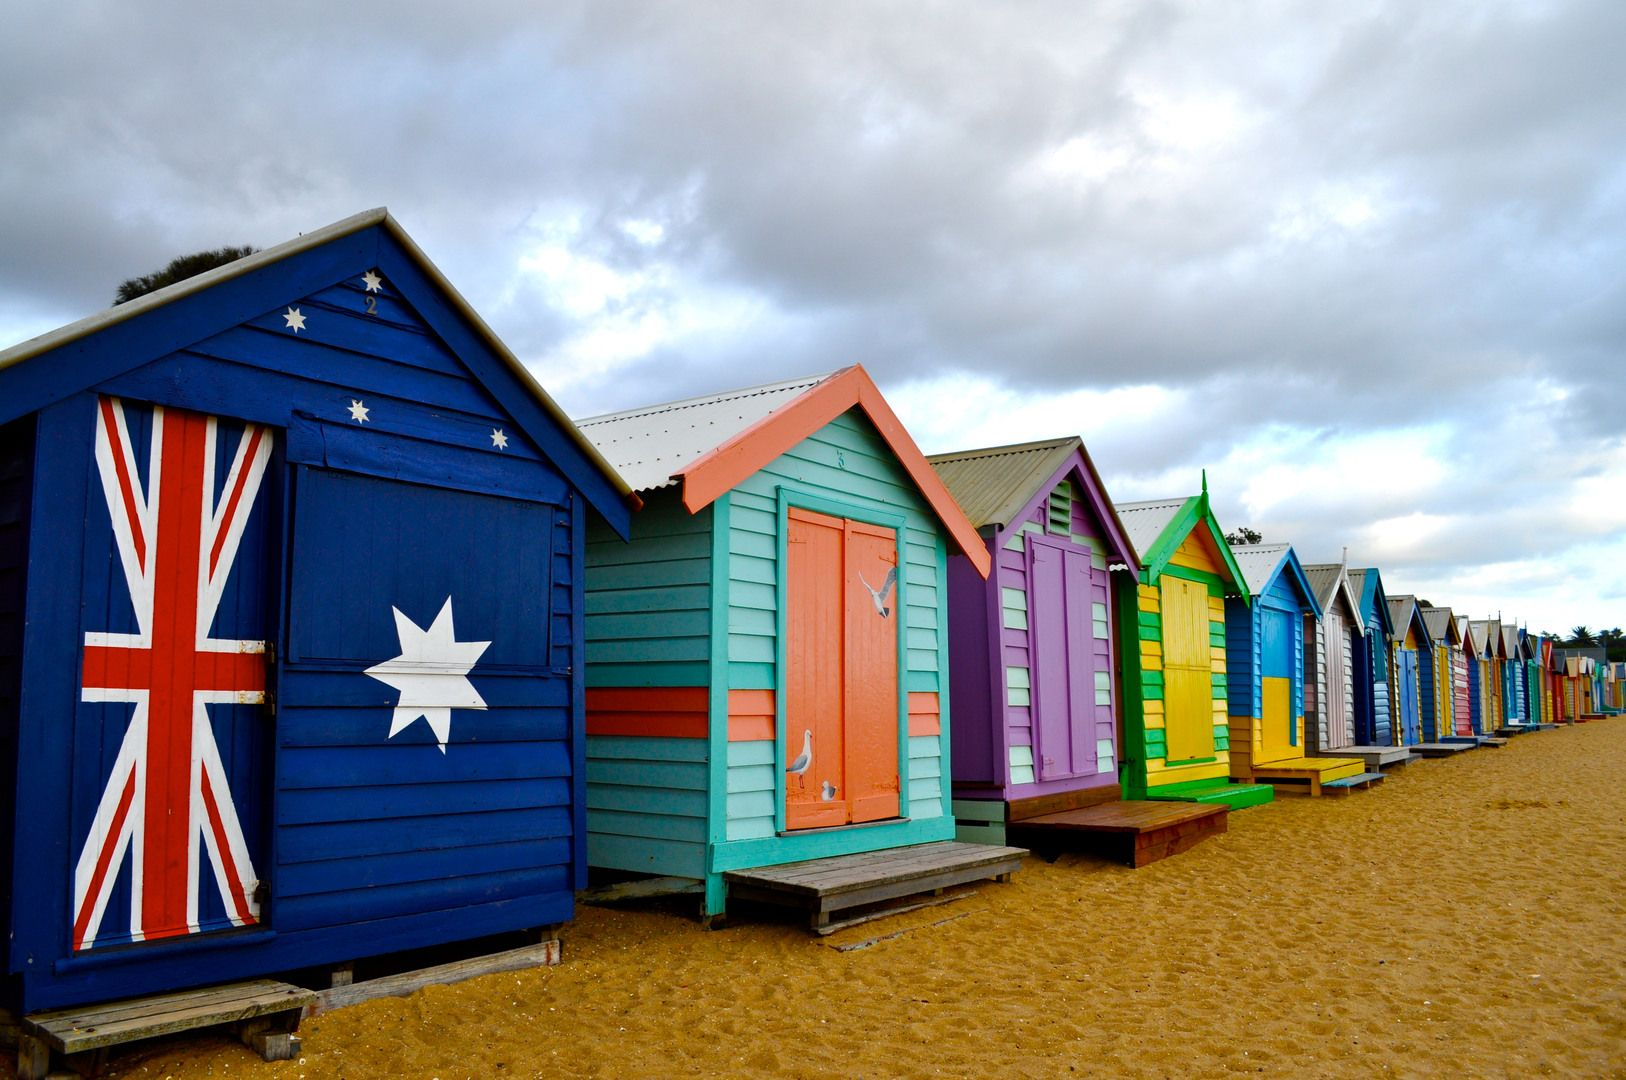 Beach Hut By Mattie Weber In Australia So Colorful And Cheerful